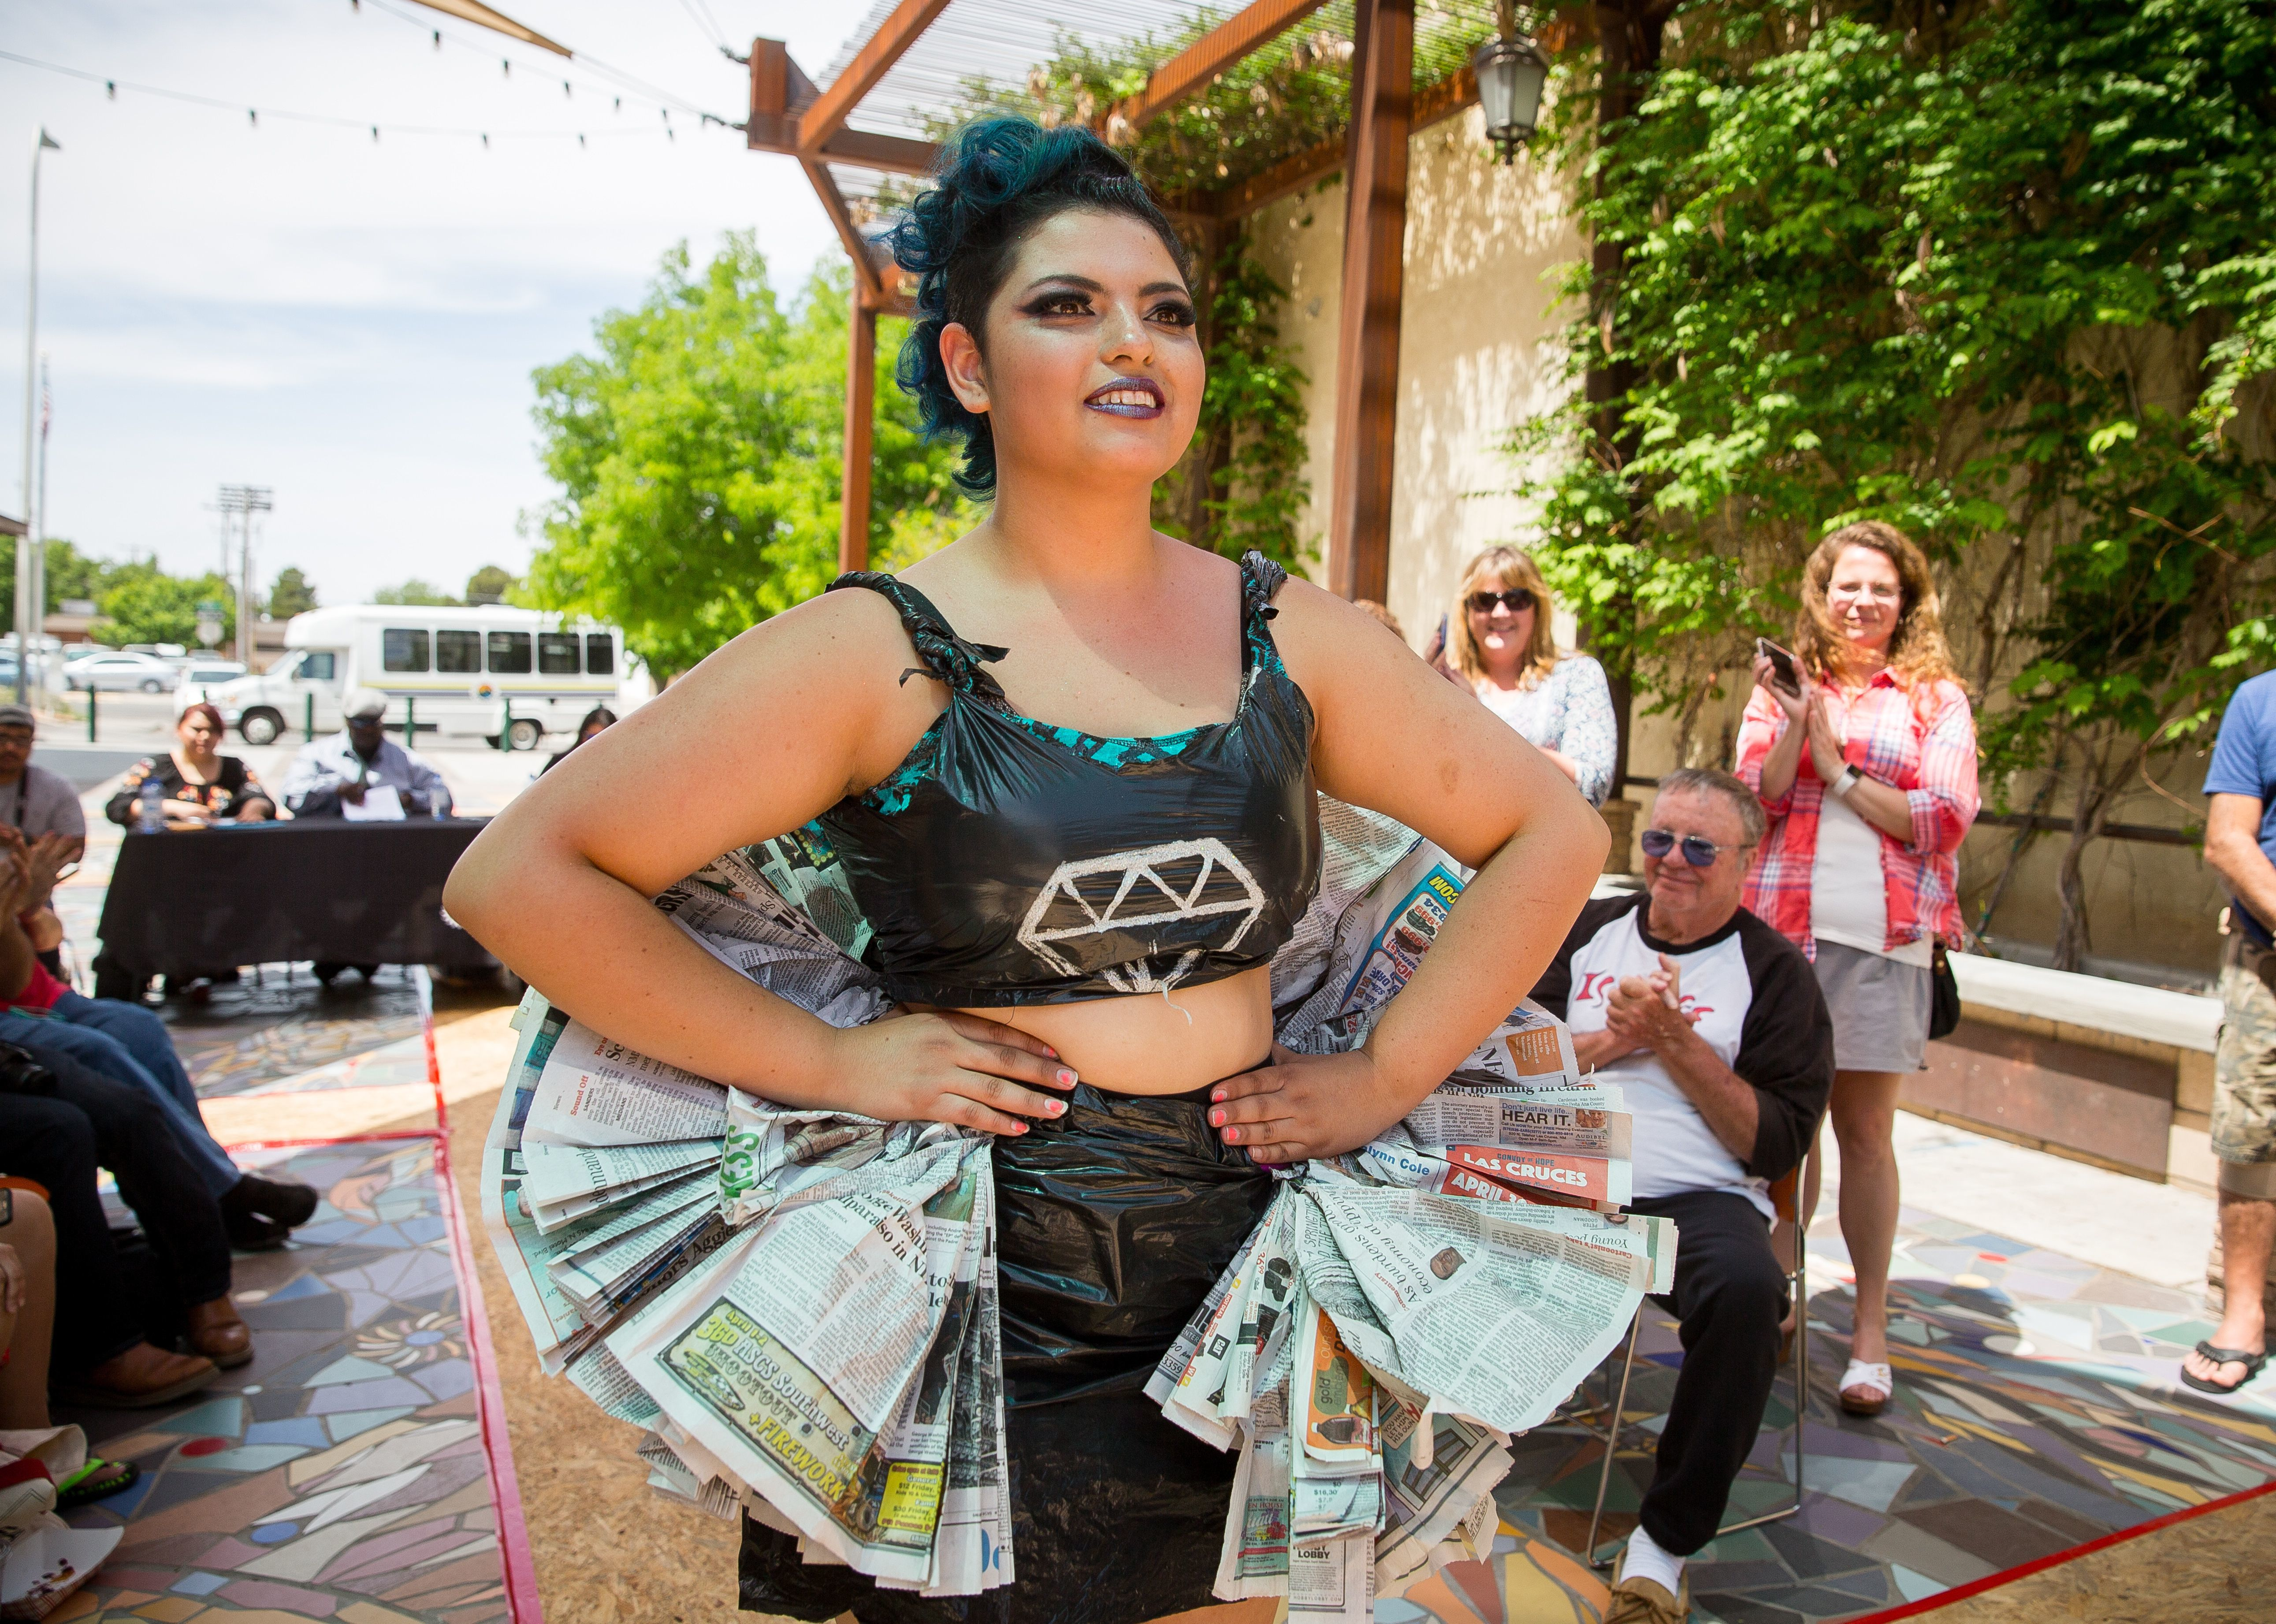 """Elaine Cuaron, dressed as a """"punk rock ballerina"""" in an outfit made from recycled materials, struts a temporary catwalk in La Placita off of Main Street as part of Keep Las Cruces Beautiful's fourth annual Reuse & Recycle Fashion Show in honor of Earth Day."""